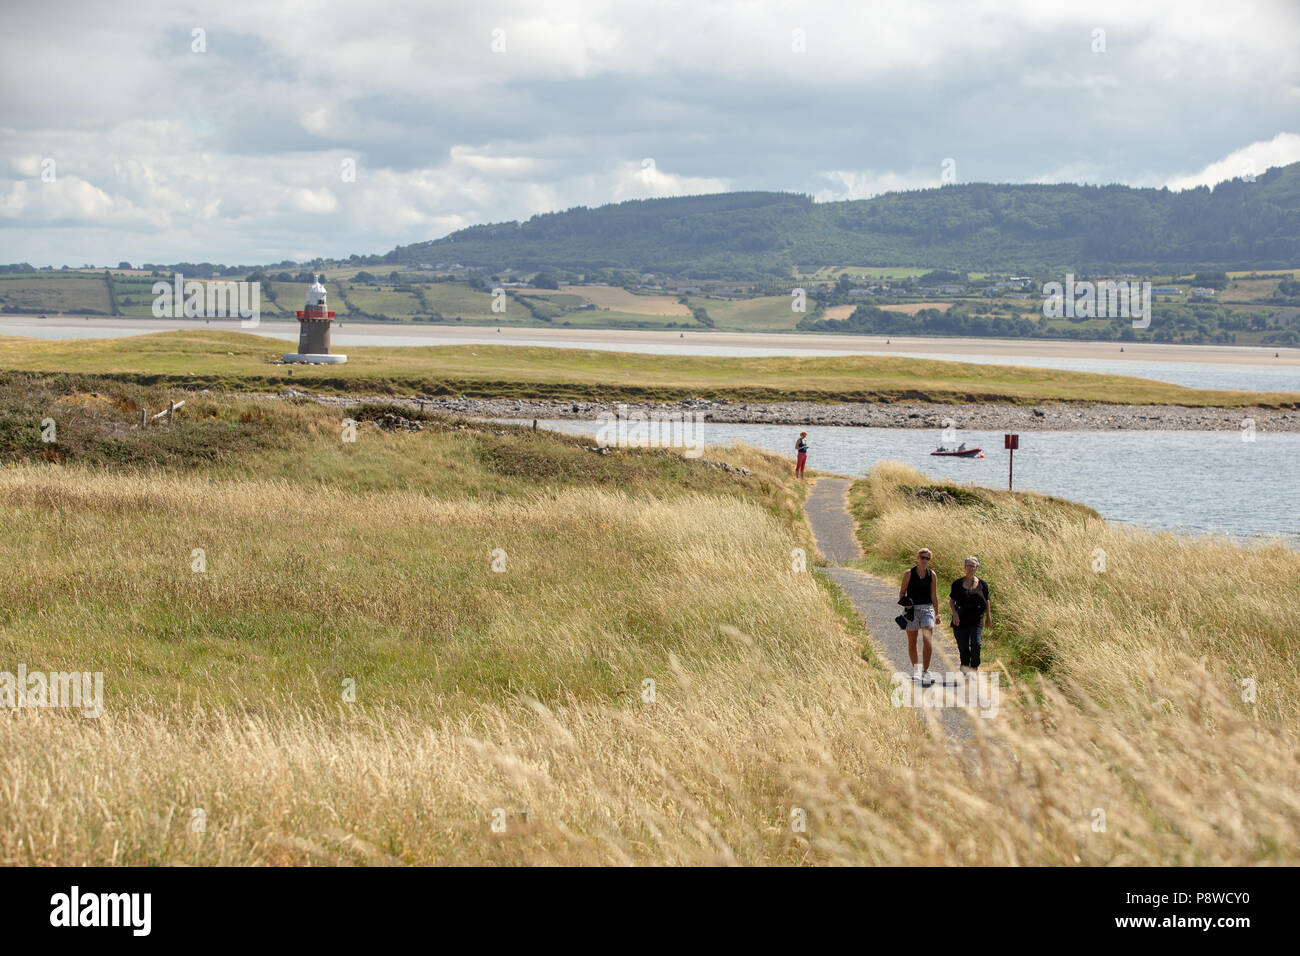 Tourists walking along the Rosses Point Coastal Way trail with Oyster Island and its famous lighthouse in the background on a sunny summer day. - Stock Image